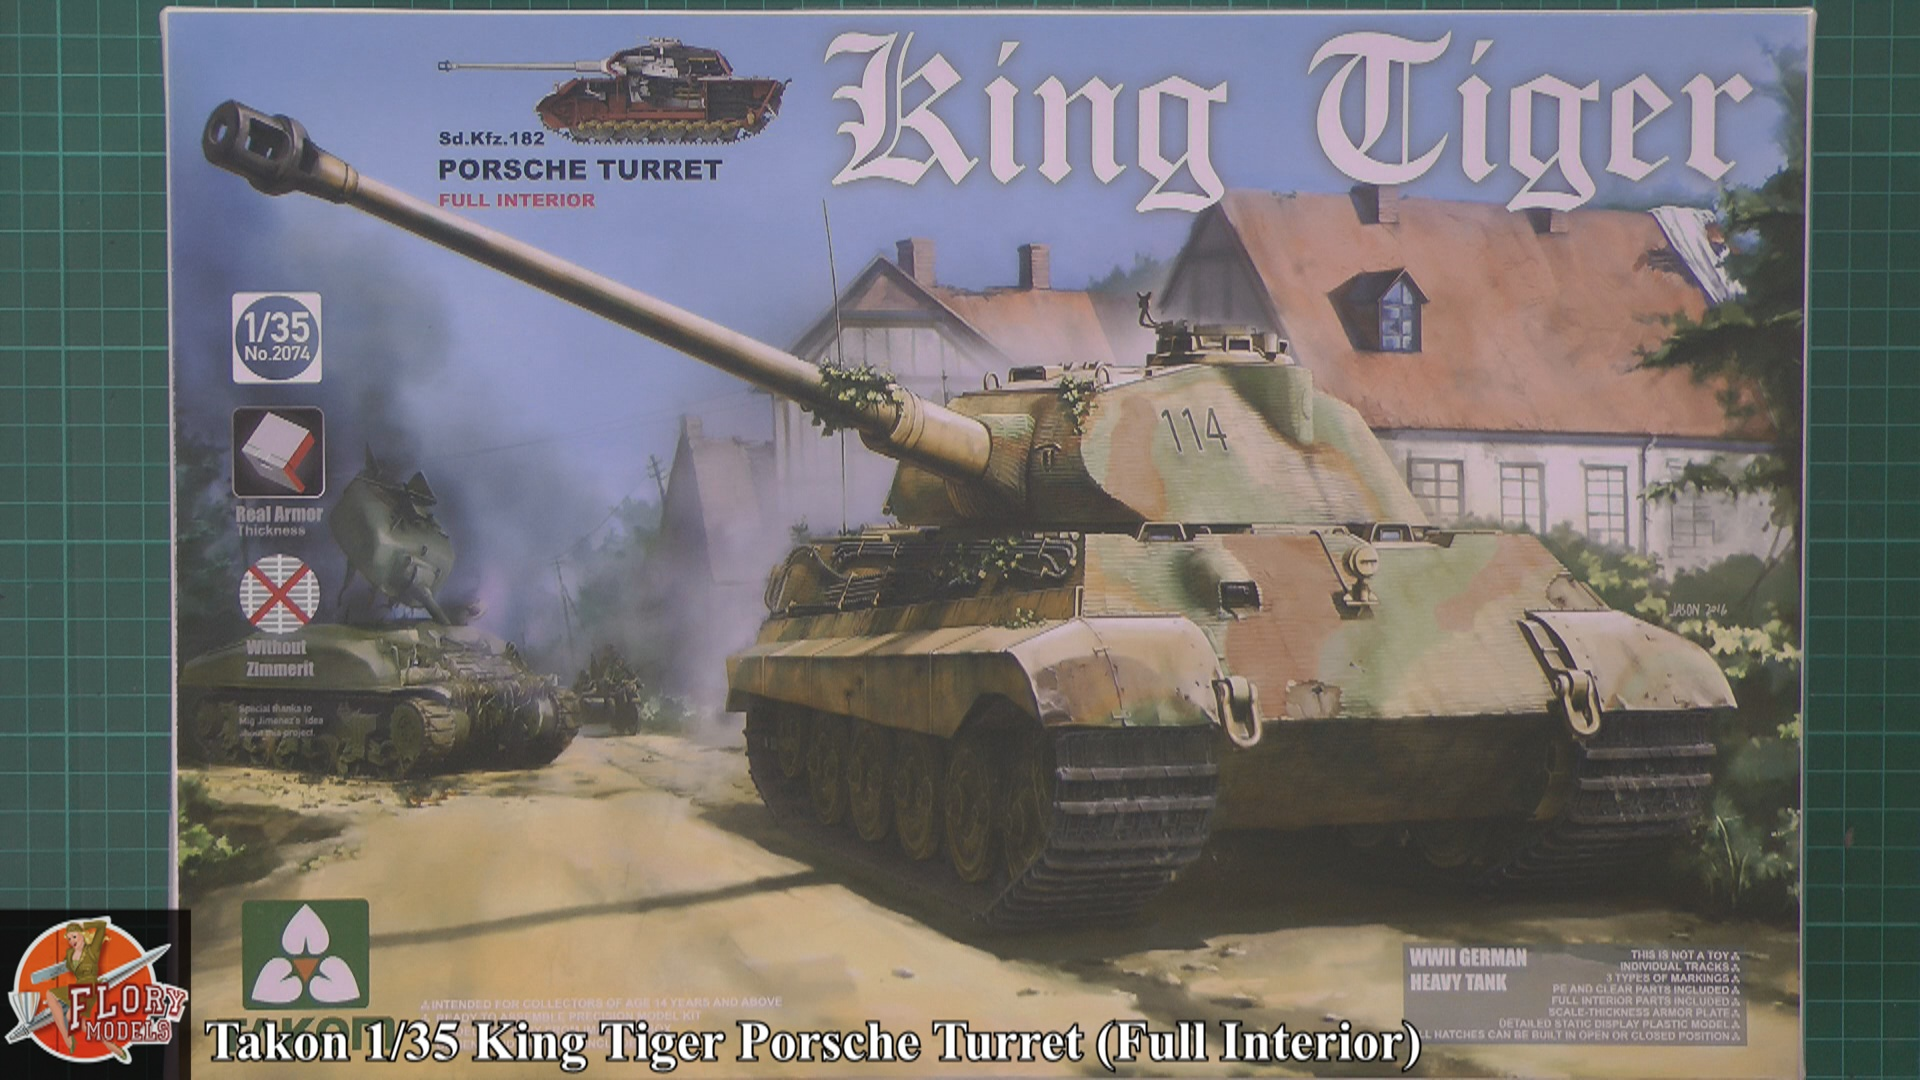 King Tiger Scale: 1/35   Manufacture: Takom   Parts used: Out of The Box   Main paints used: Vallejo, Tamiya